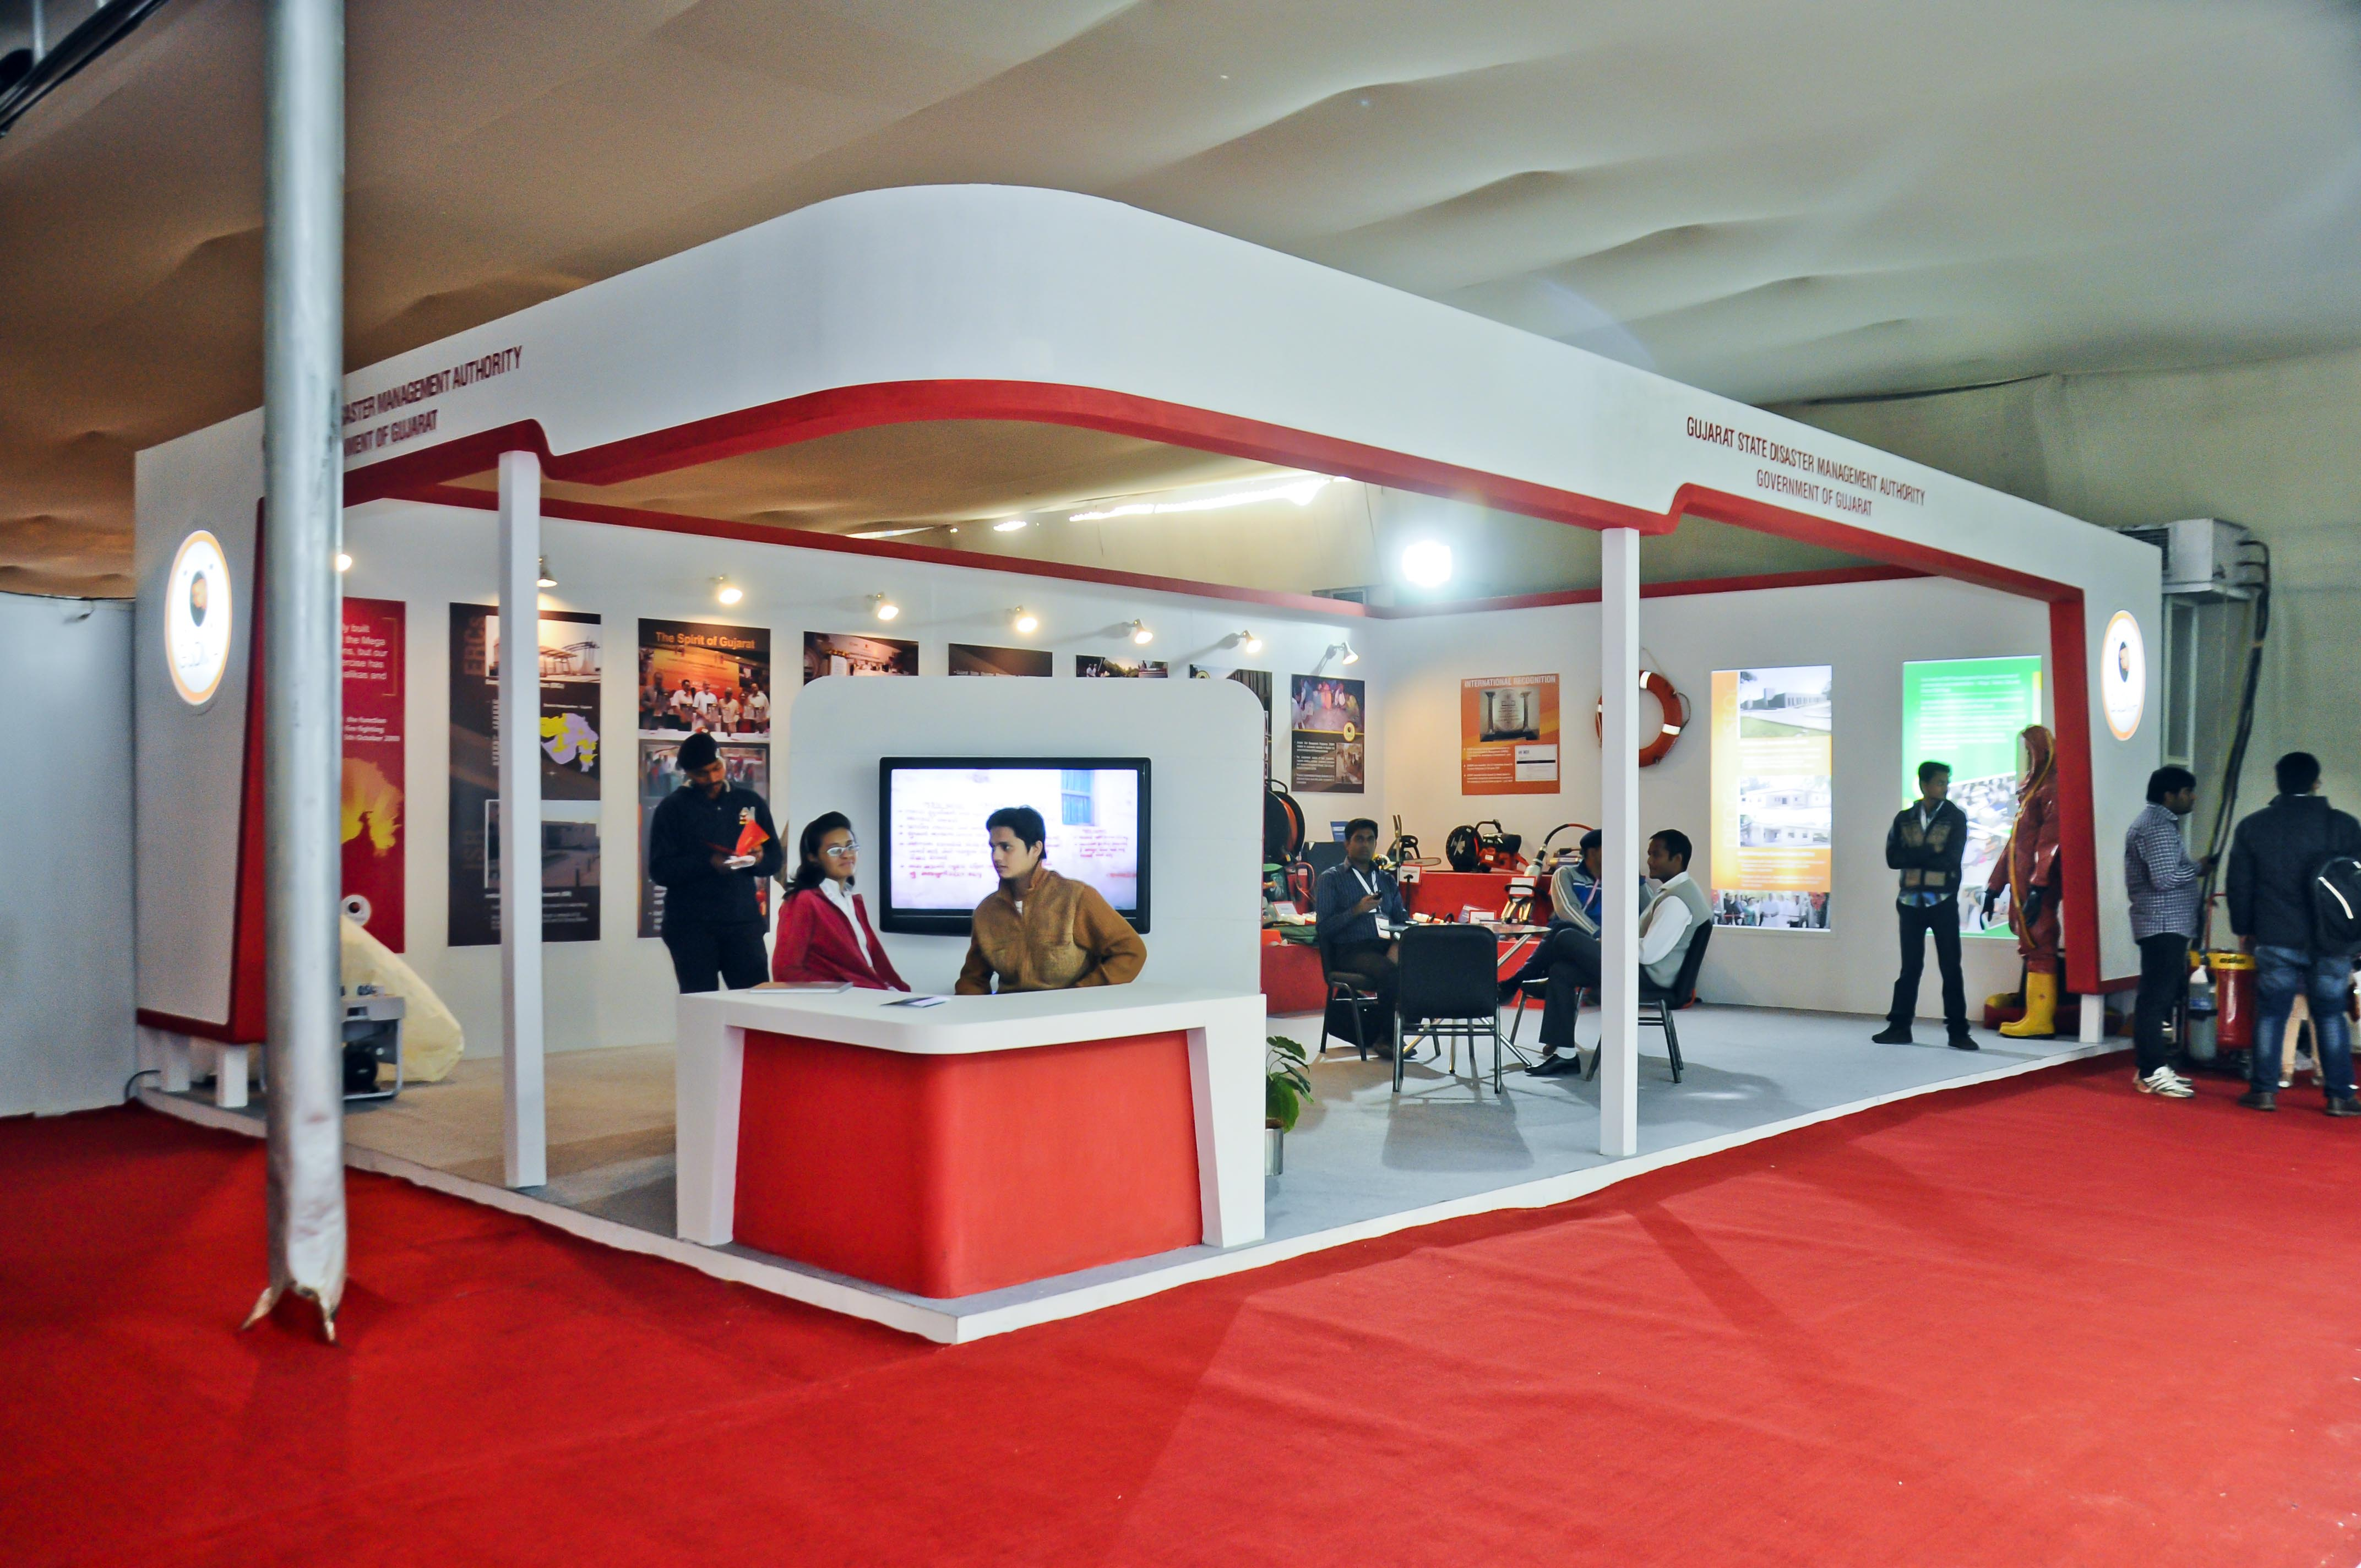 Exhibition Stall Photo : Exhibition stall theme pavilion u2013 smart graph art advertising pvt. ltd.